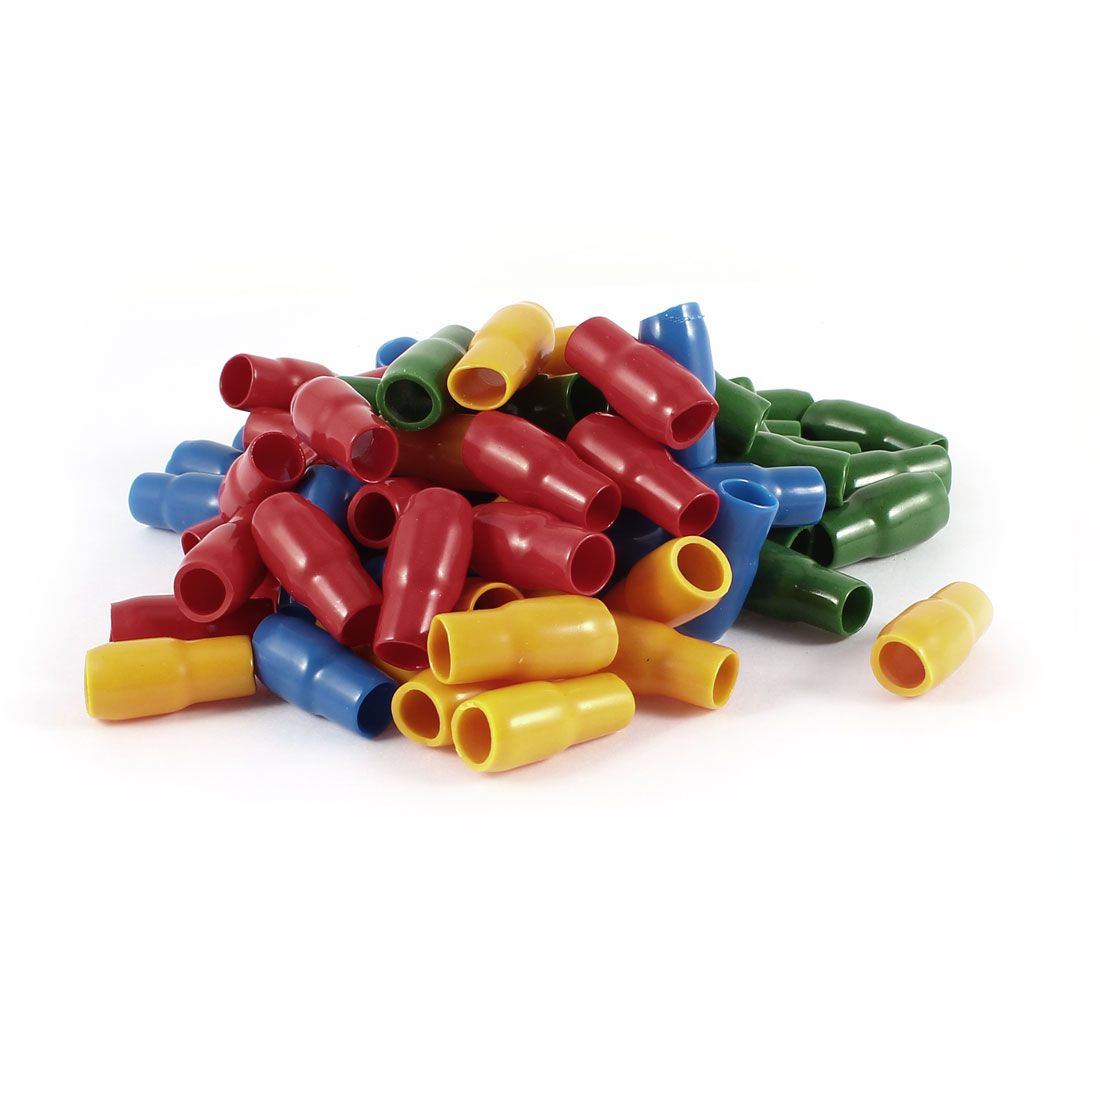 80 Pcs Soft PVC Wire V-14 16mm2 Crimp Terminal End Insulated Sleeves Cover Green Red Blue Orange